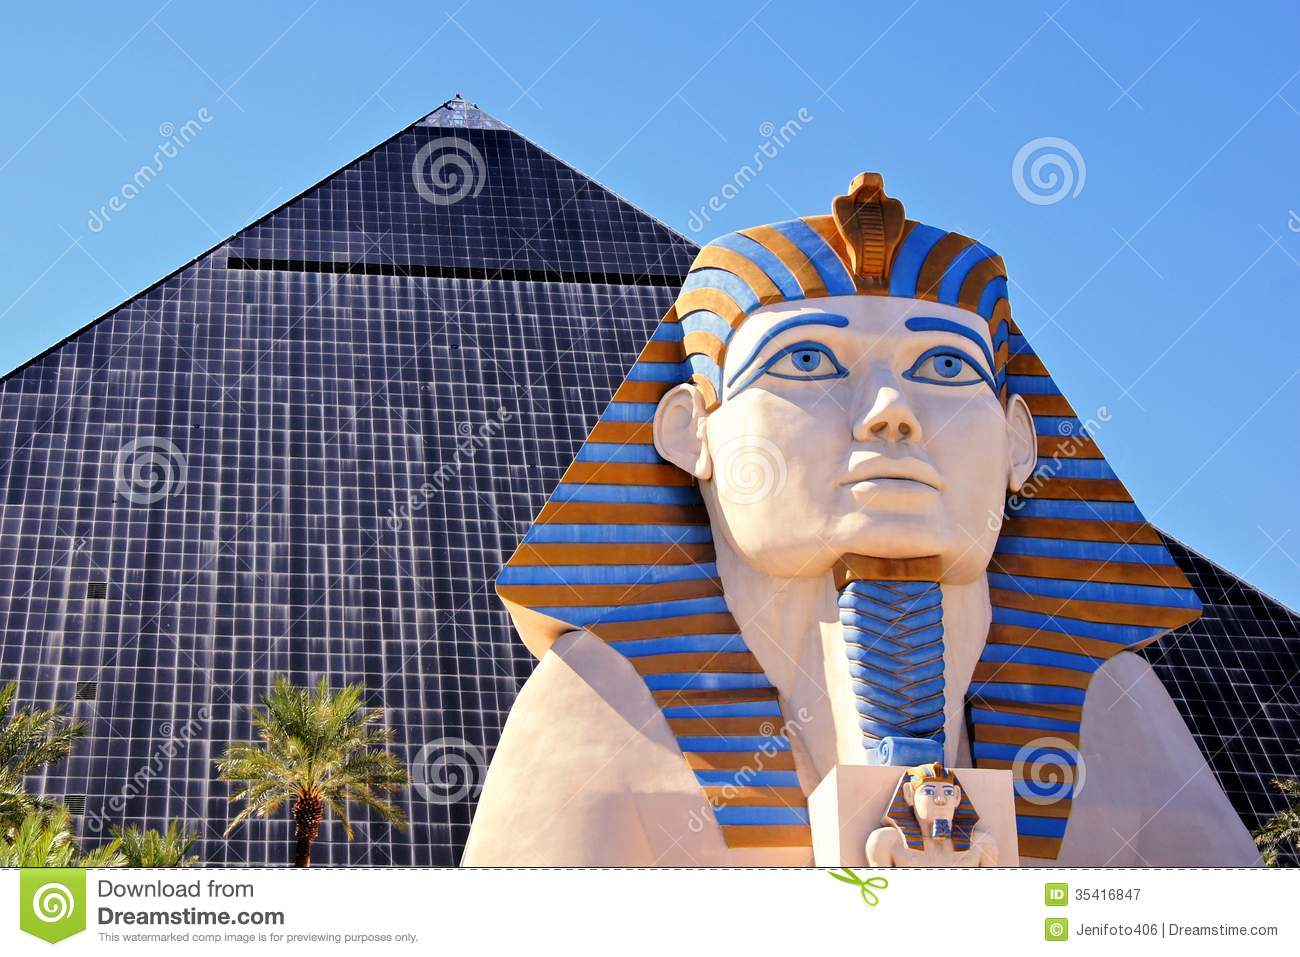 when was luxor casino built